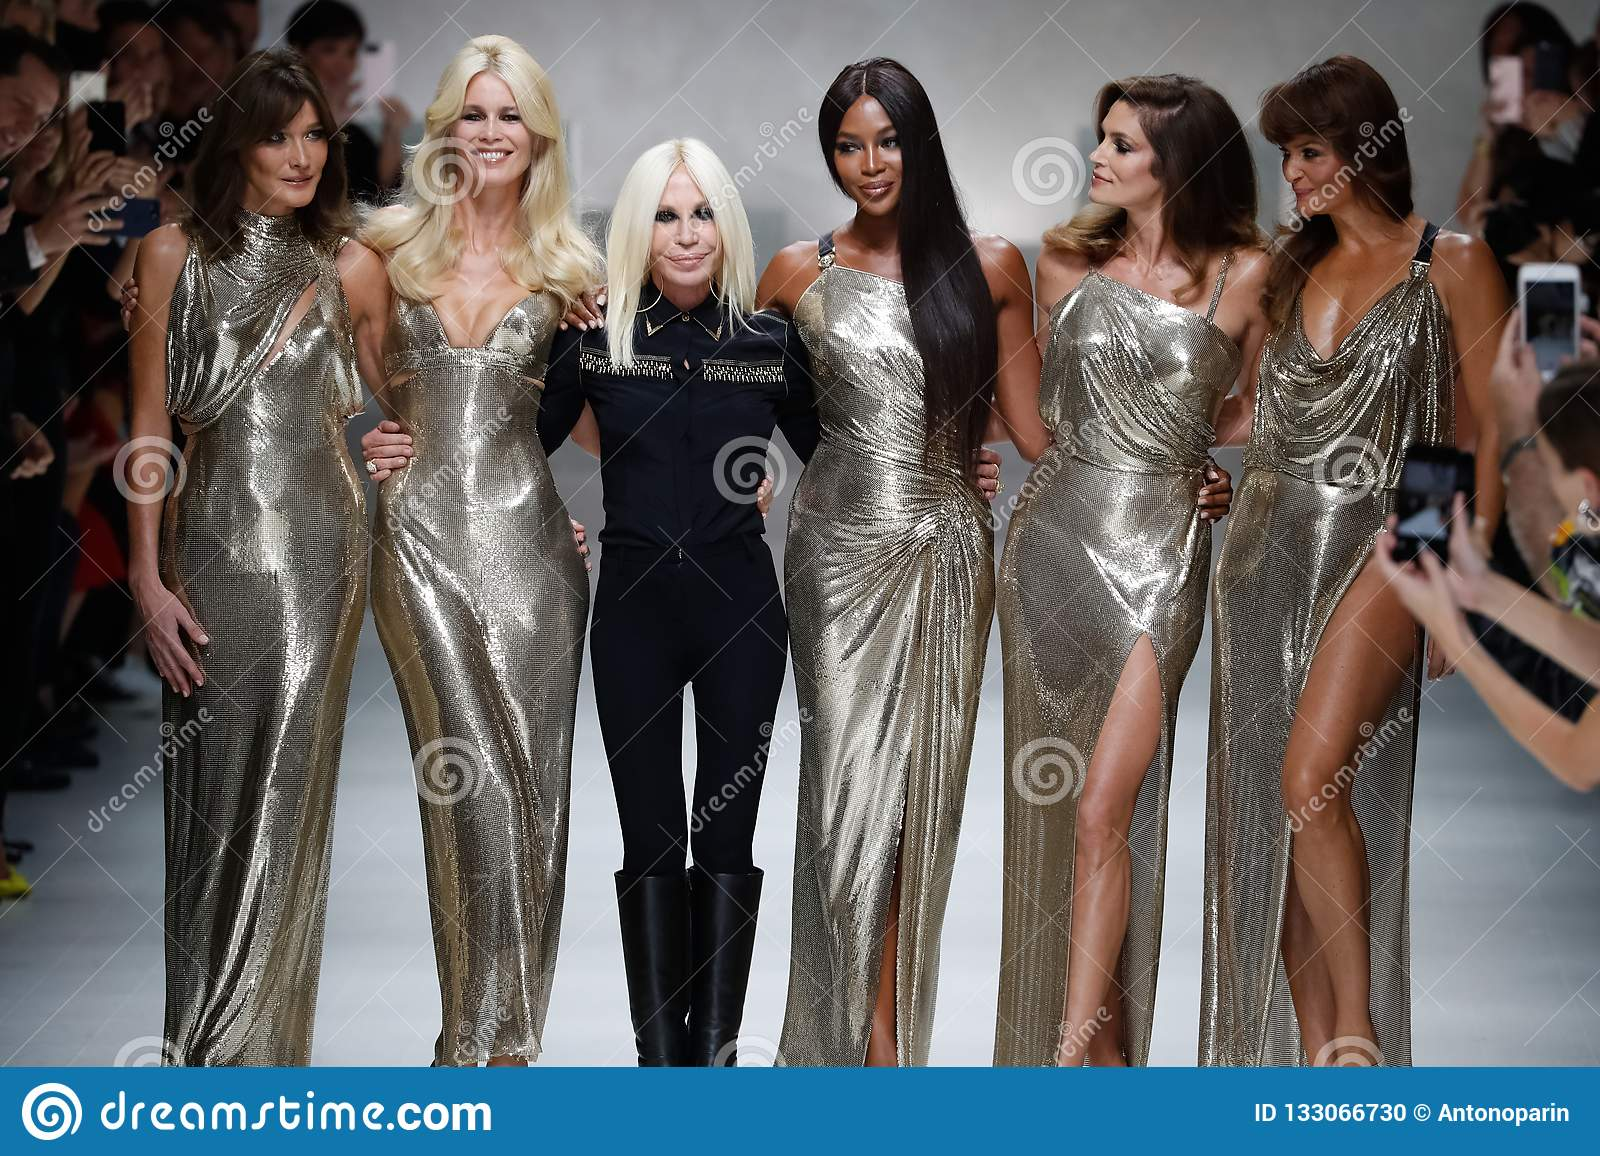 Carla Bruni Claudia Schiffer Naomi Campbell Cindy Crawford Helena Christensen And Donatella Versace Walk The Runway Editorial Image Image Of Cindy Gown 133066730